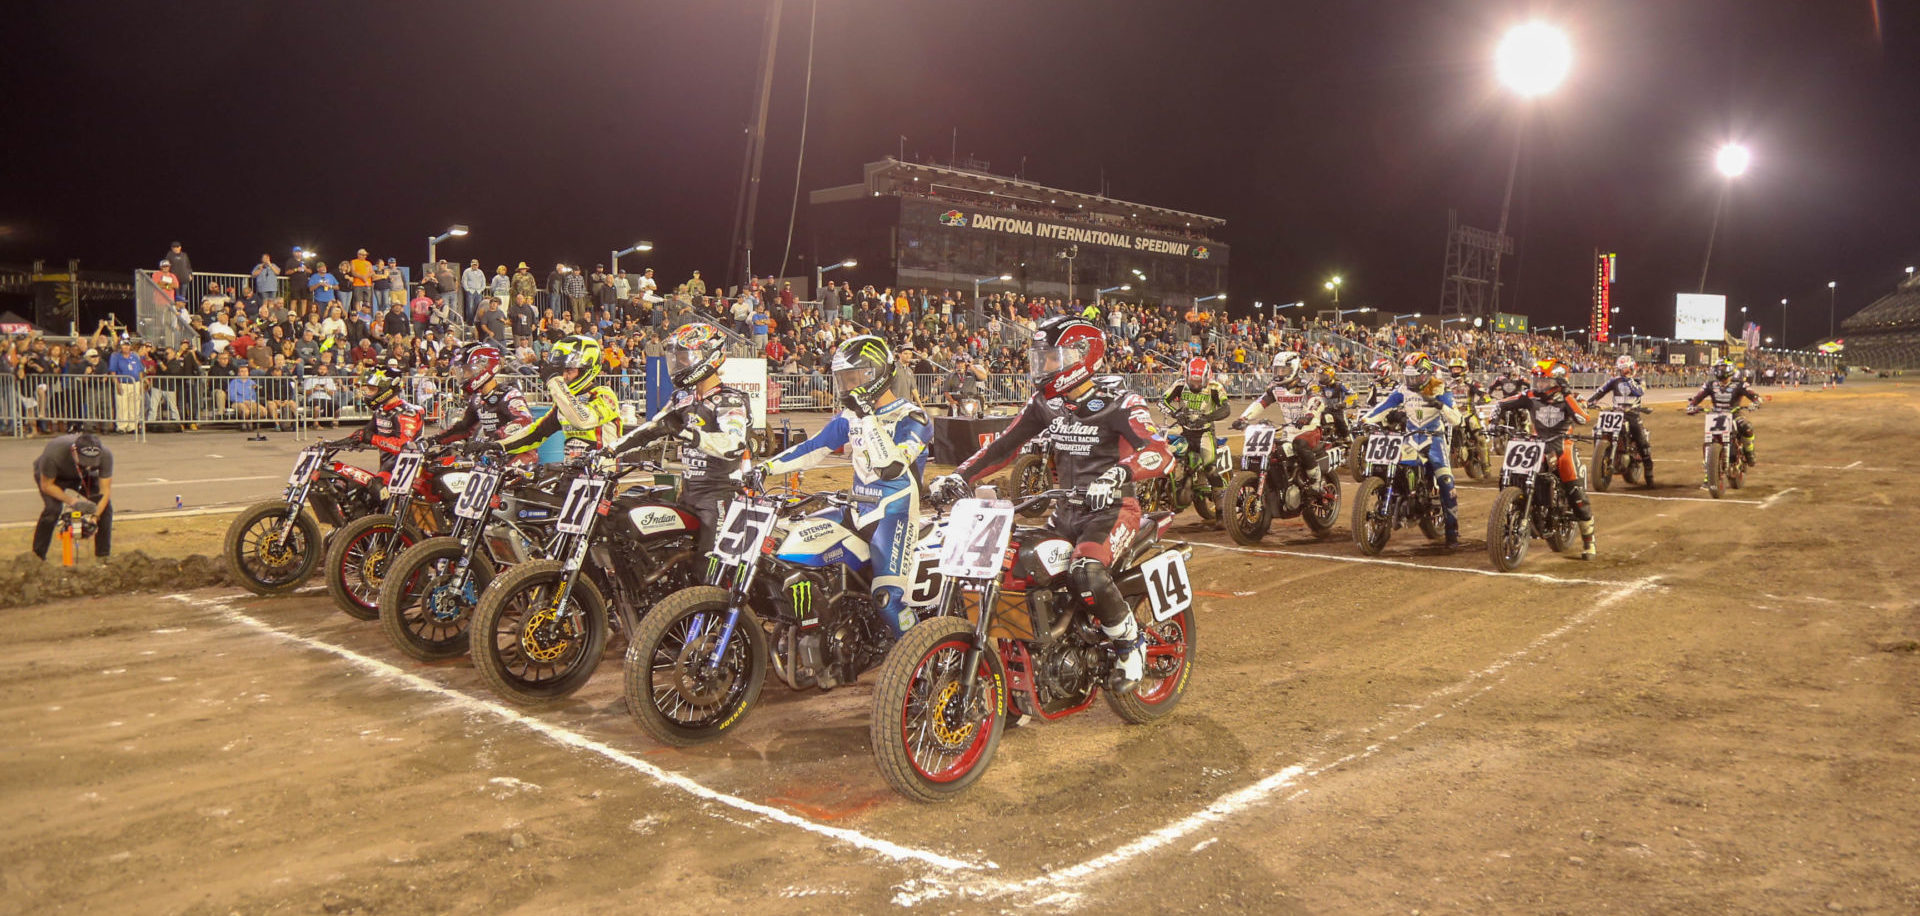 The starting grid for the AFT Twins race at the 2019 Daytona TT. Photo by Scott Hunter, courtesy of AFT.